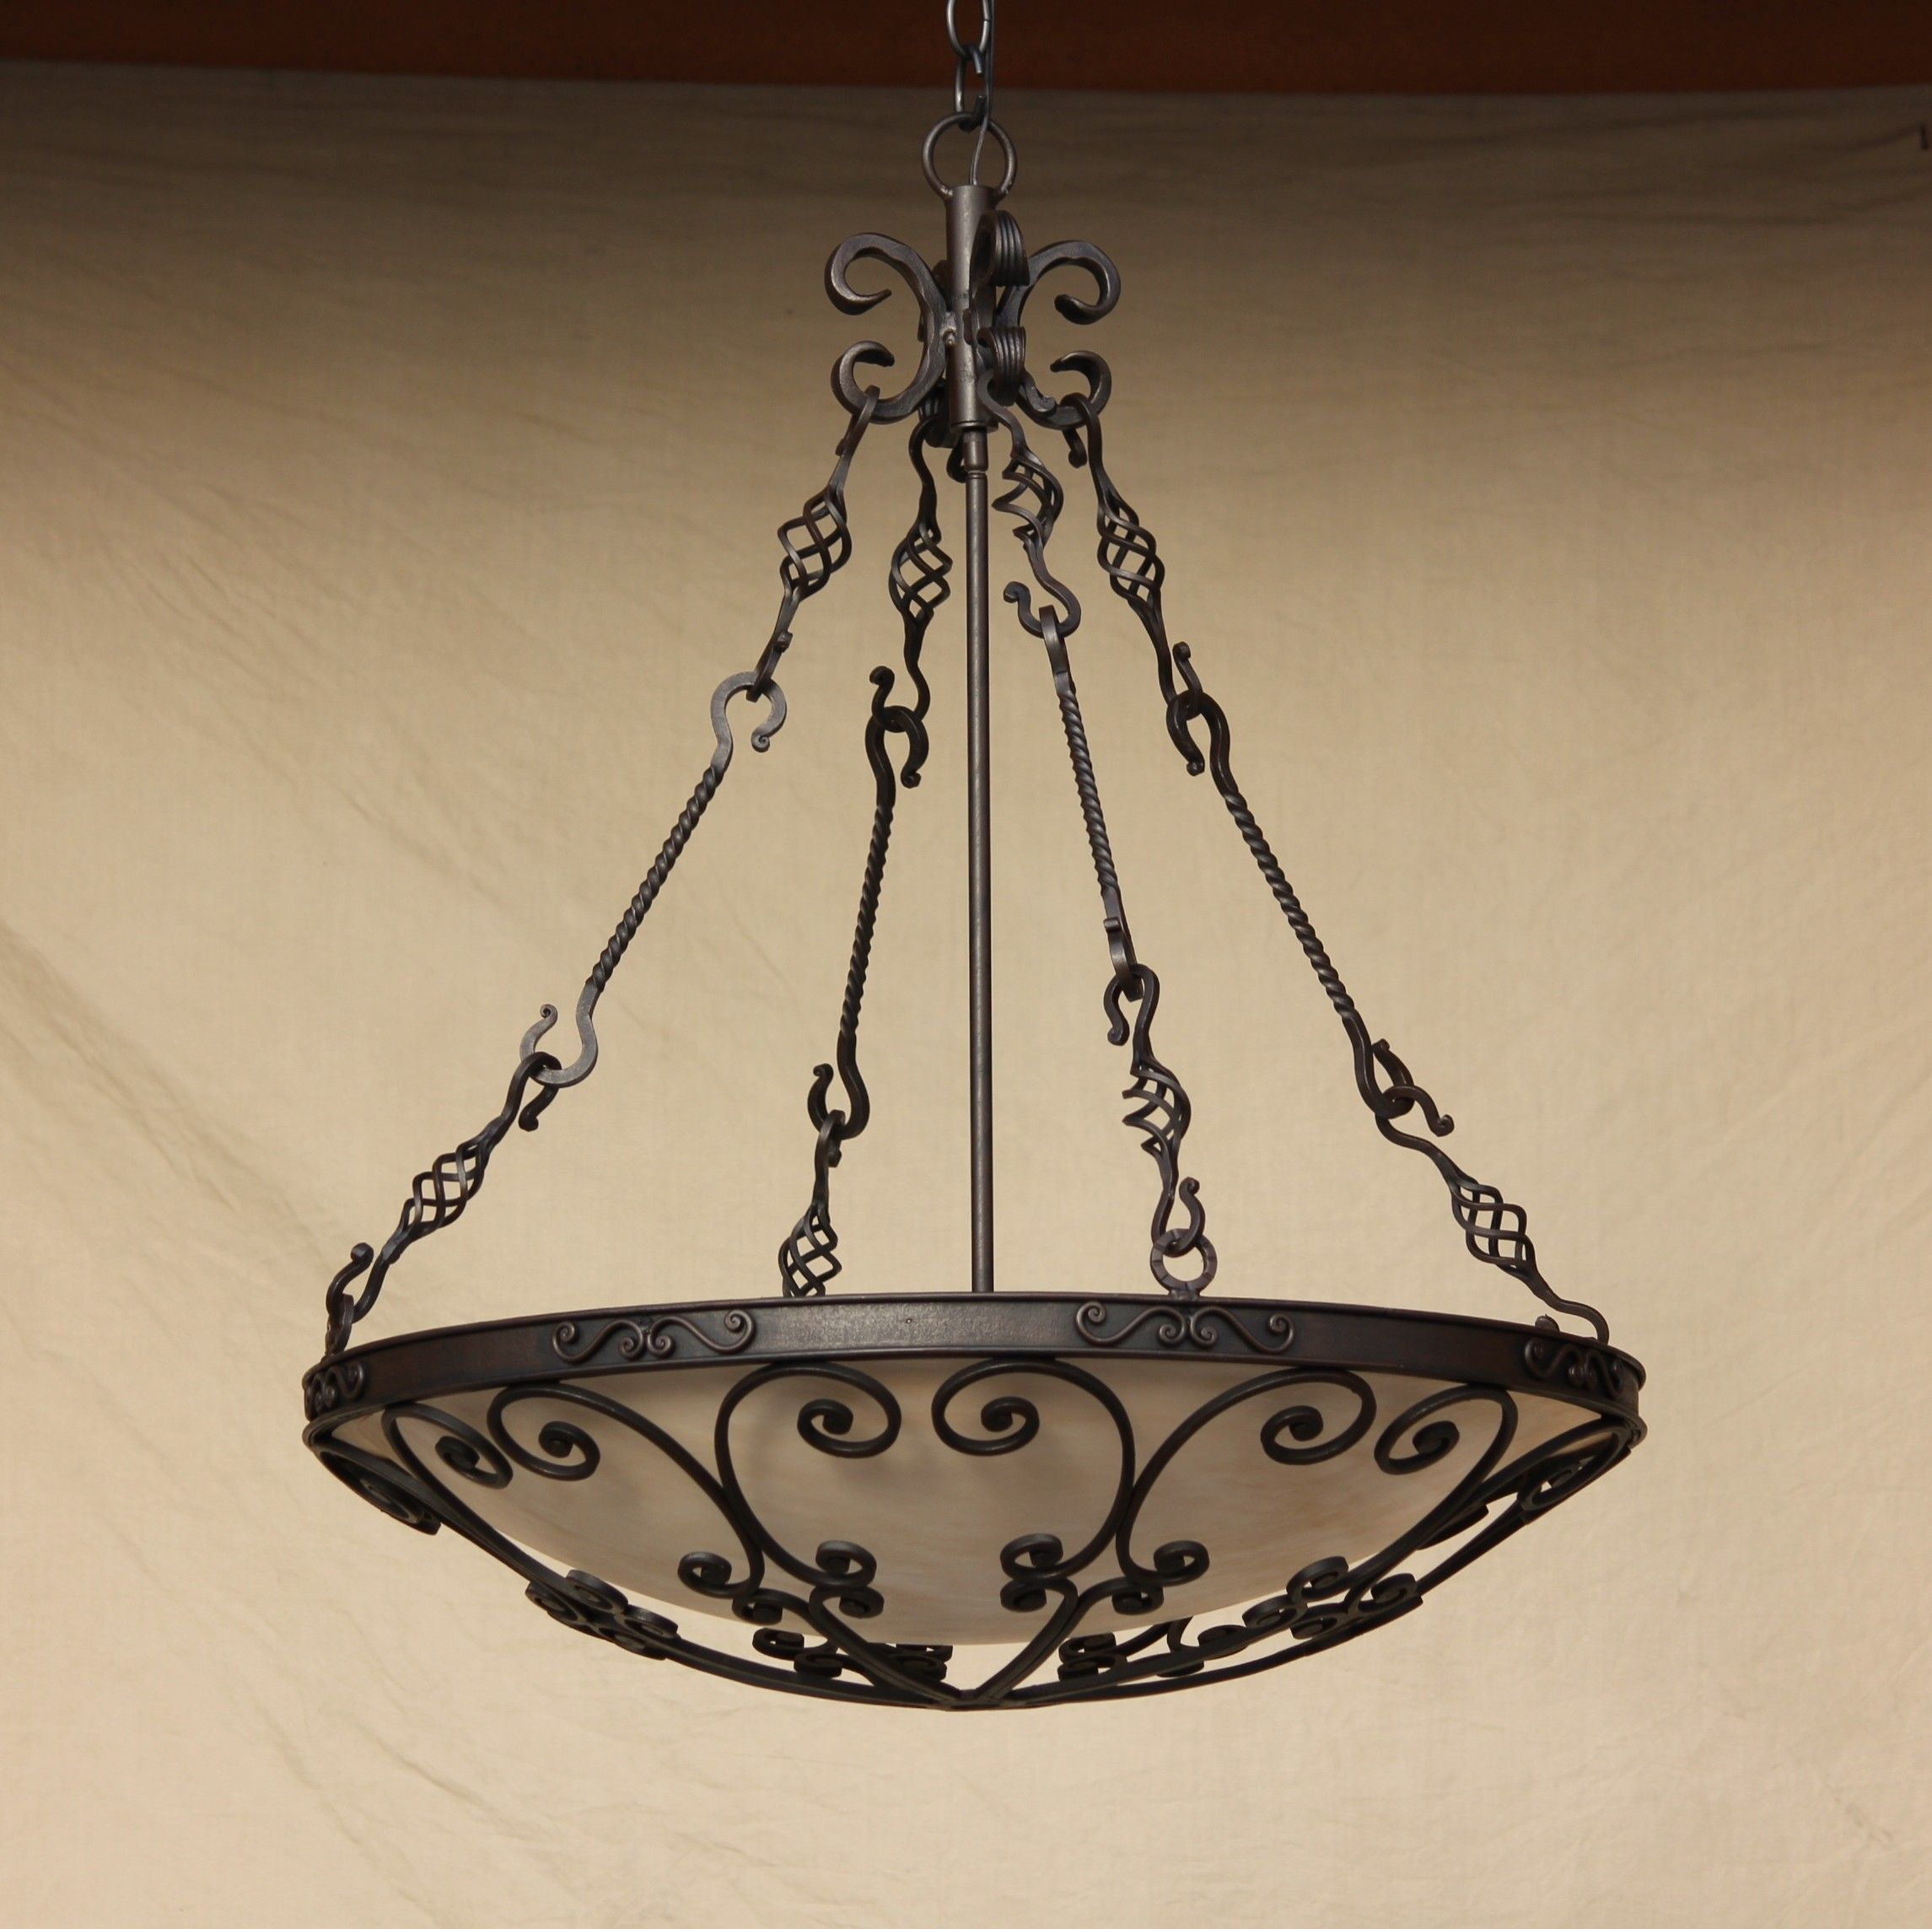 Pendant Lighting Hanging Hand Forged Wrought Iron Tuscan Pendant